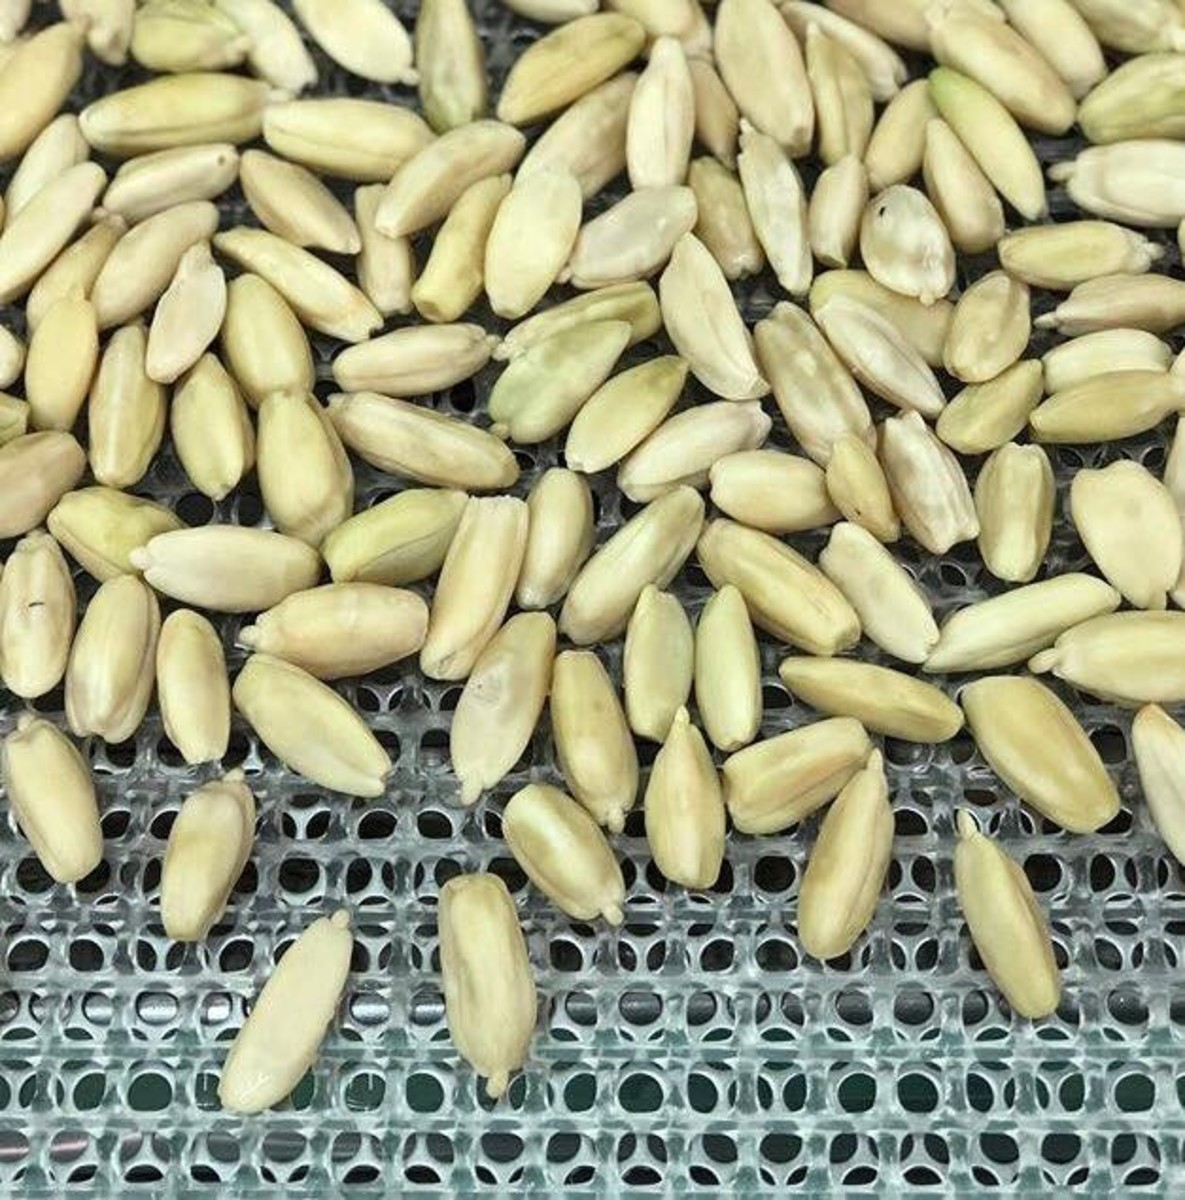 This is what the shelled pili nuts look like.